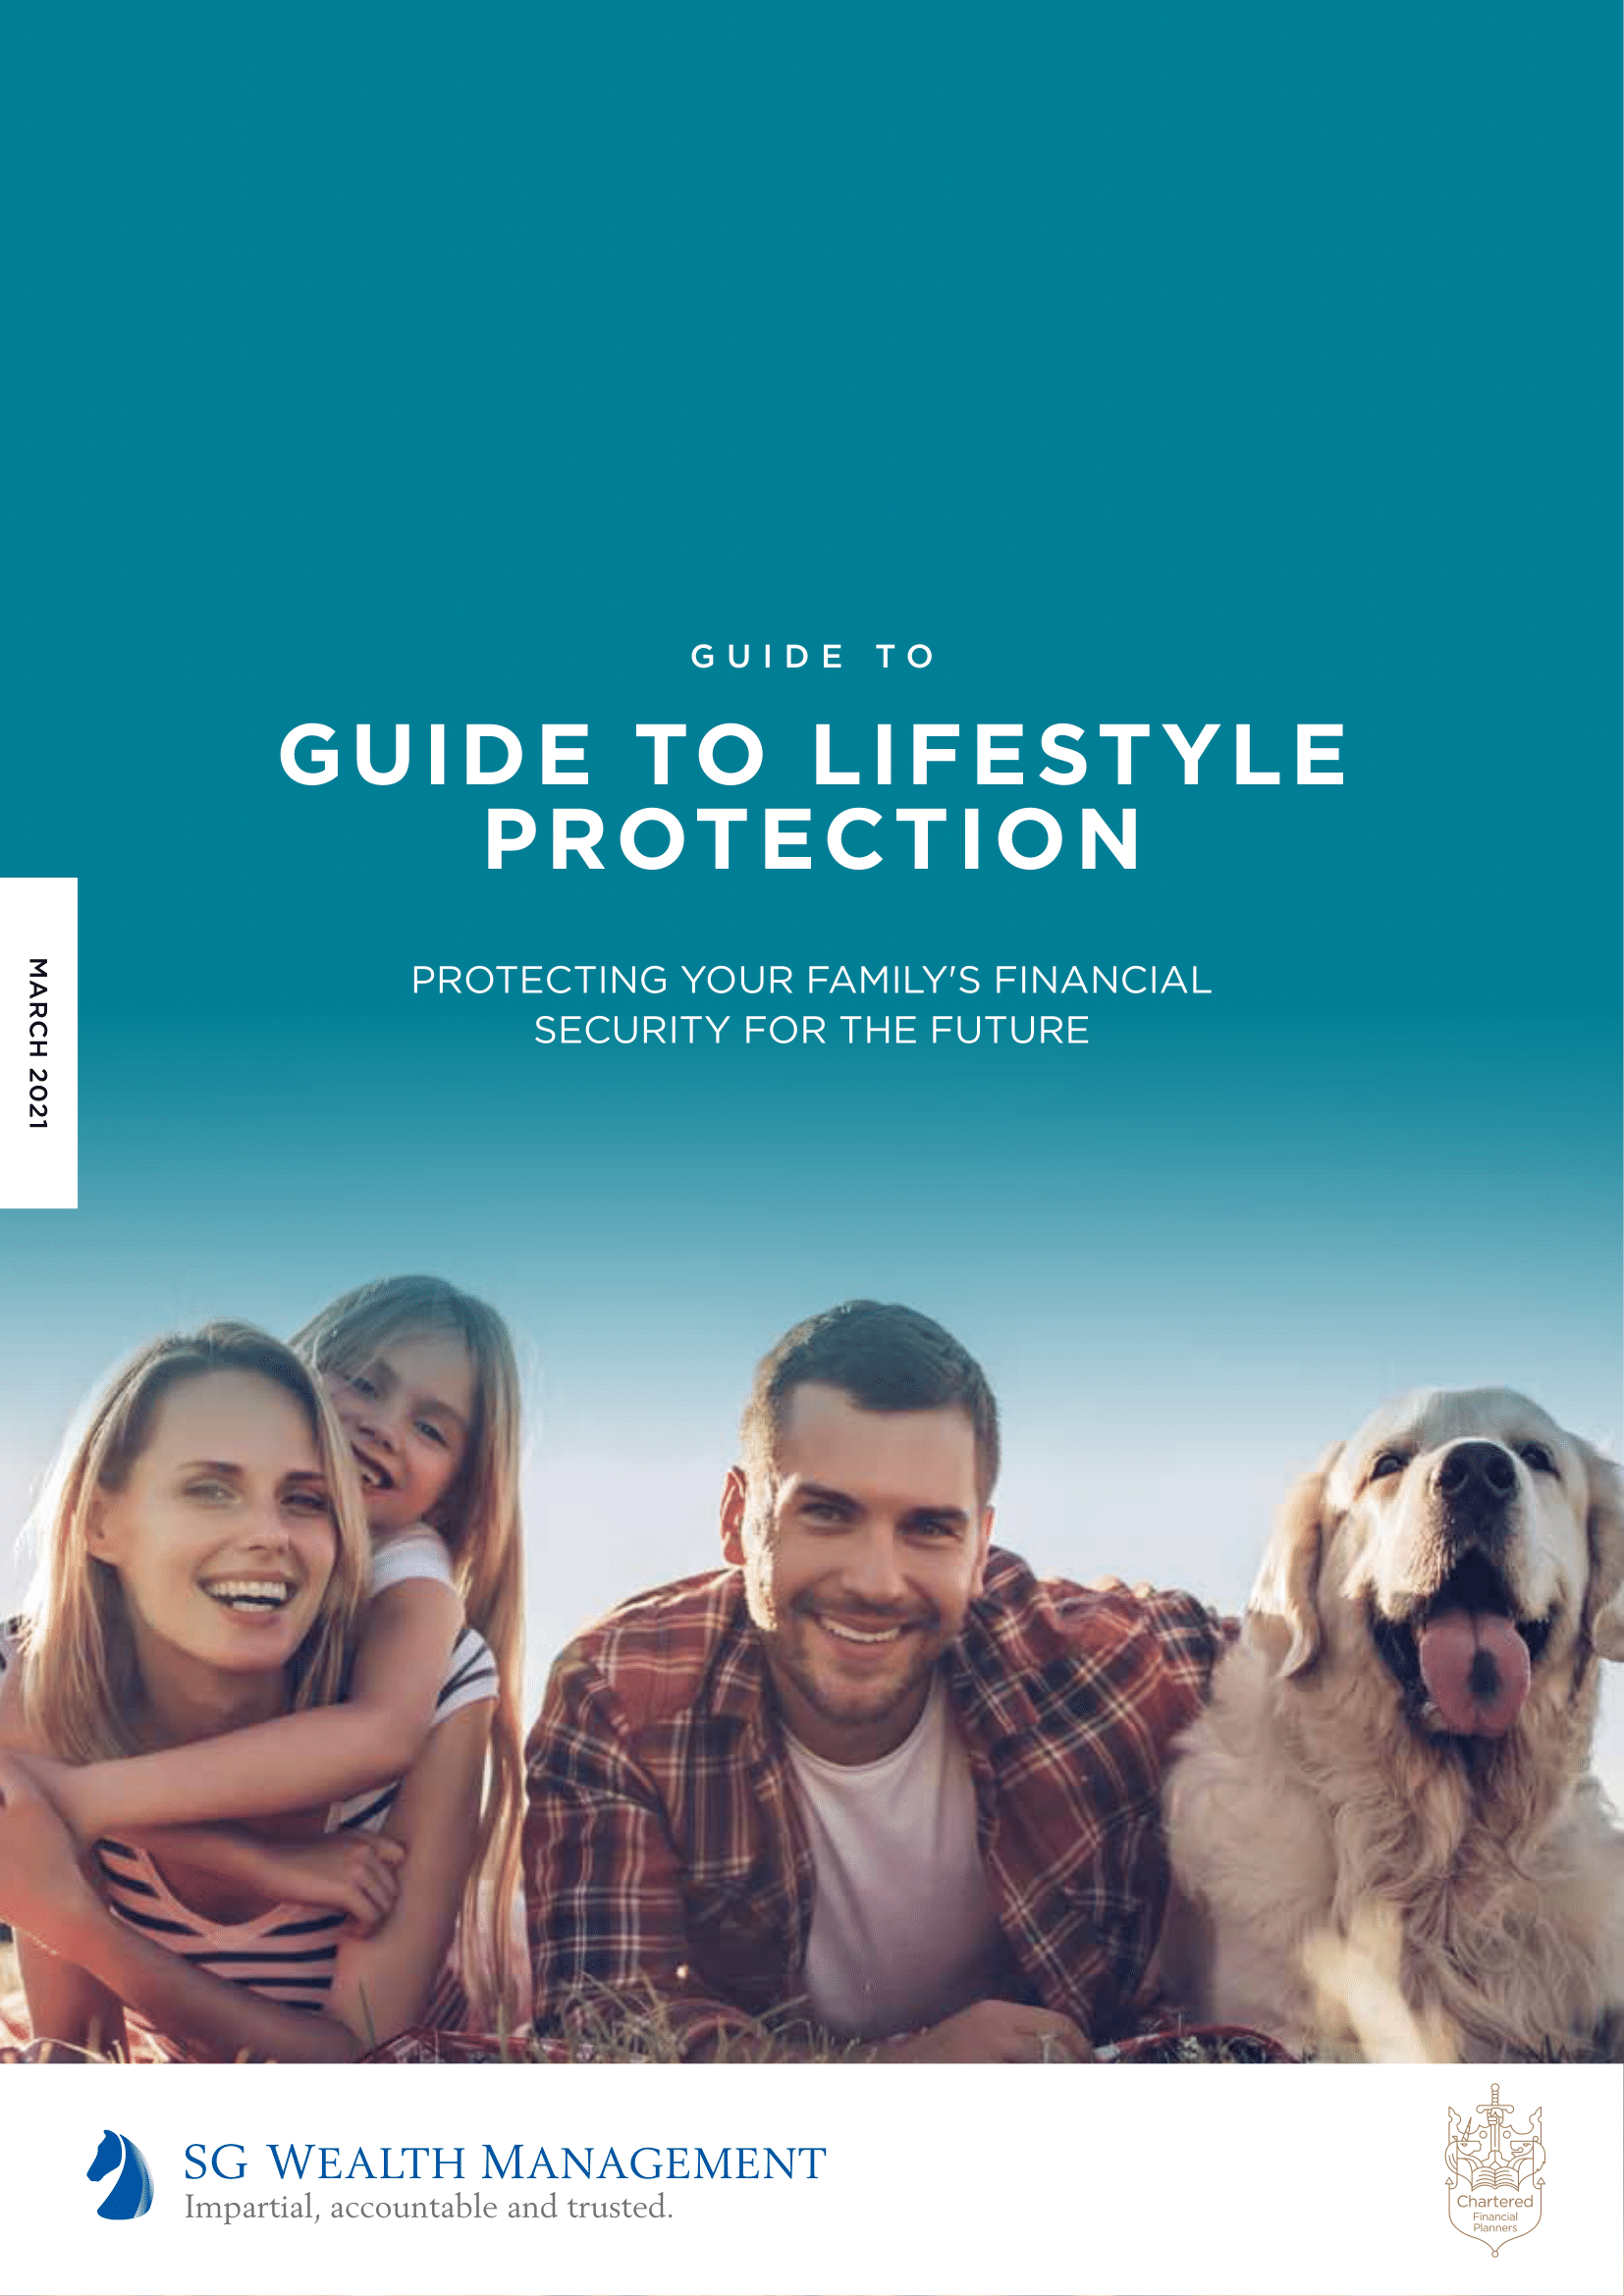 sgwm-guide-to-lifestyle-protection